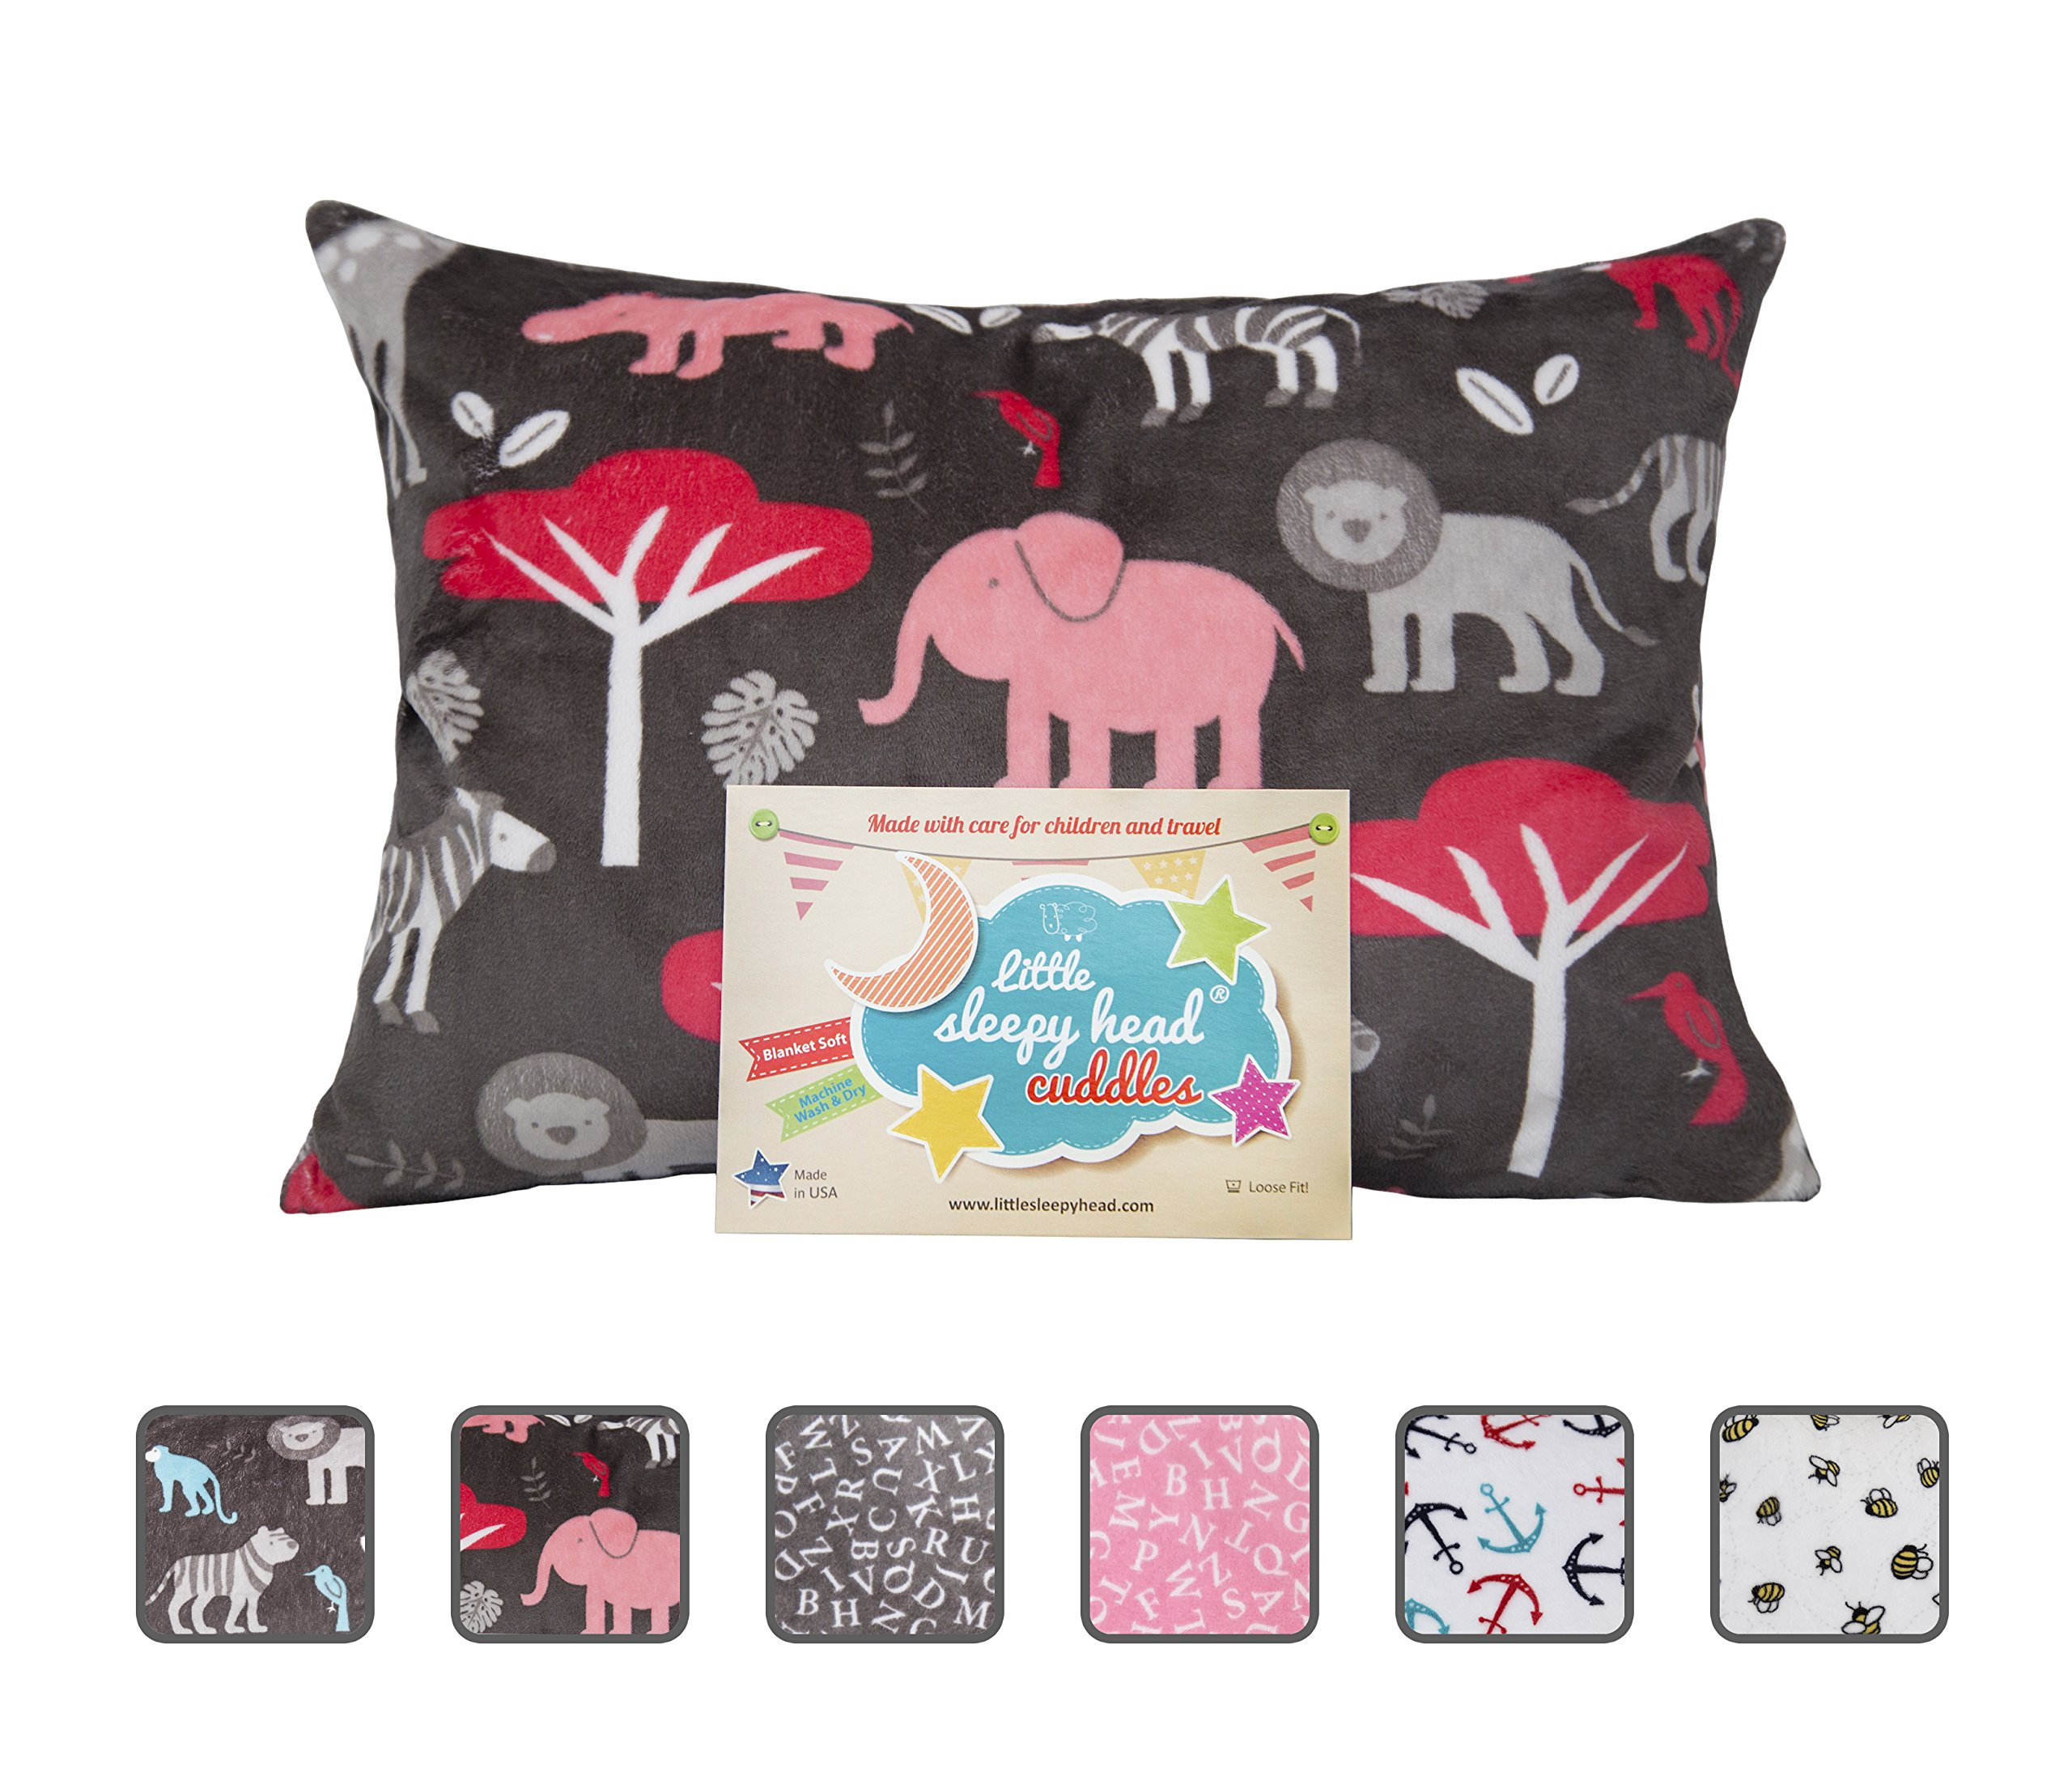 Little Sleepy Head Toddler Pillowcase - Cuddle Collection - Jungle Pink, 13 X 18